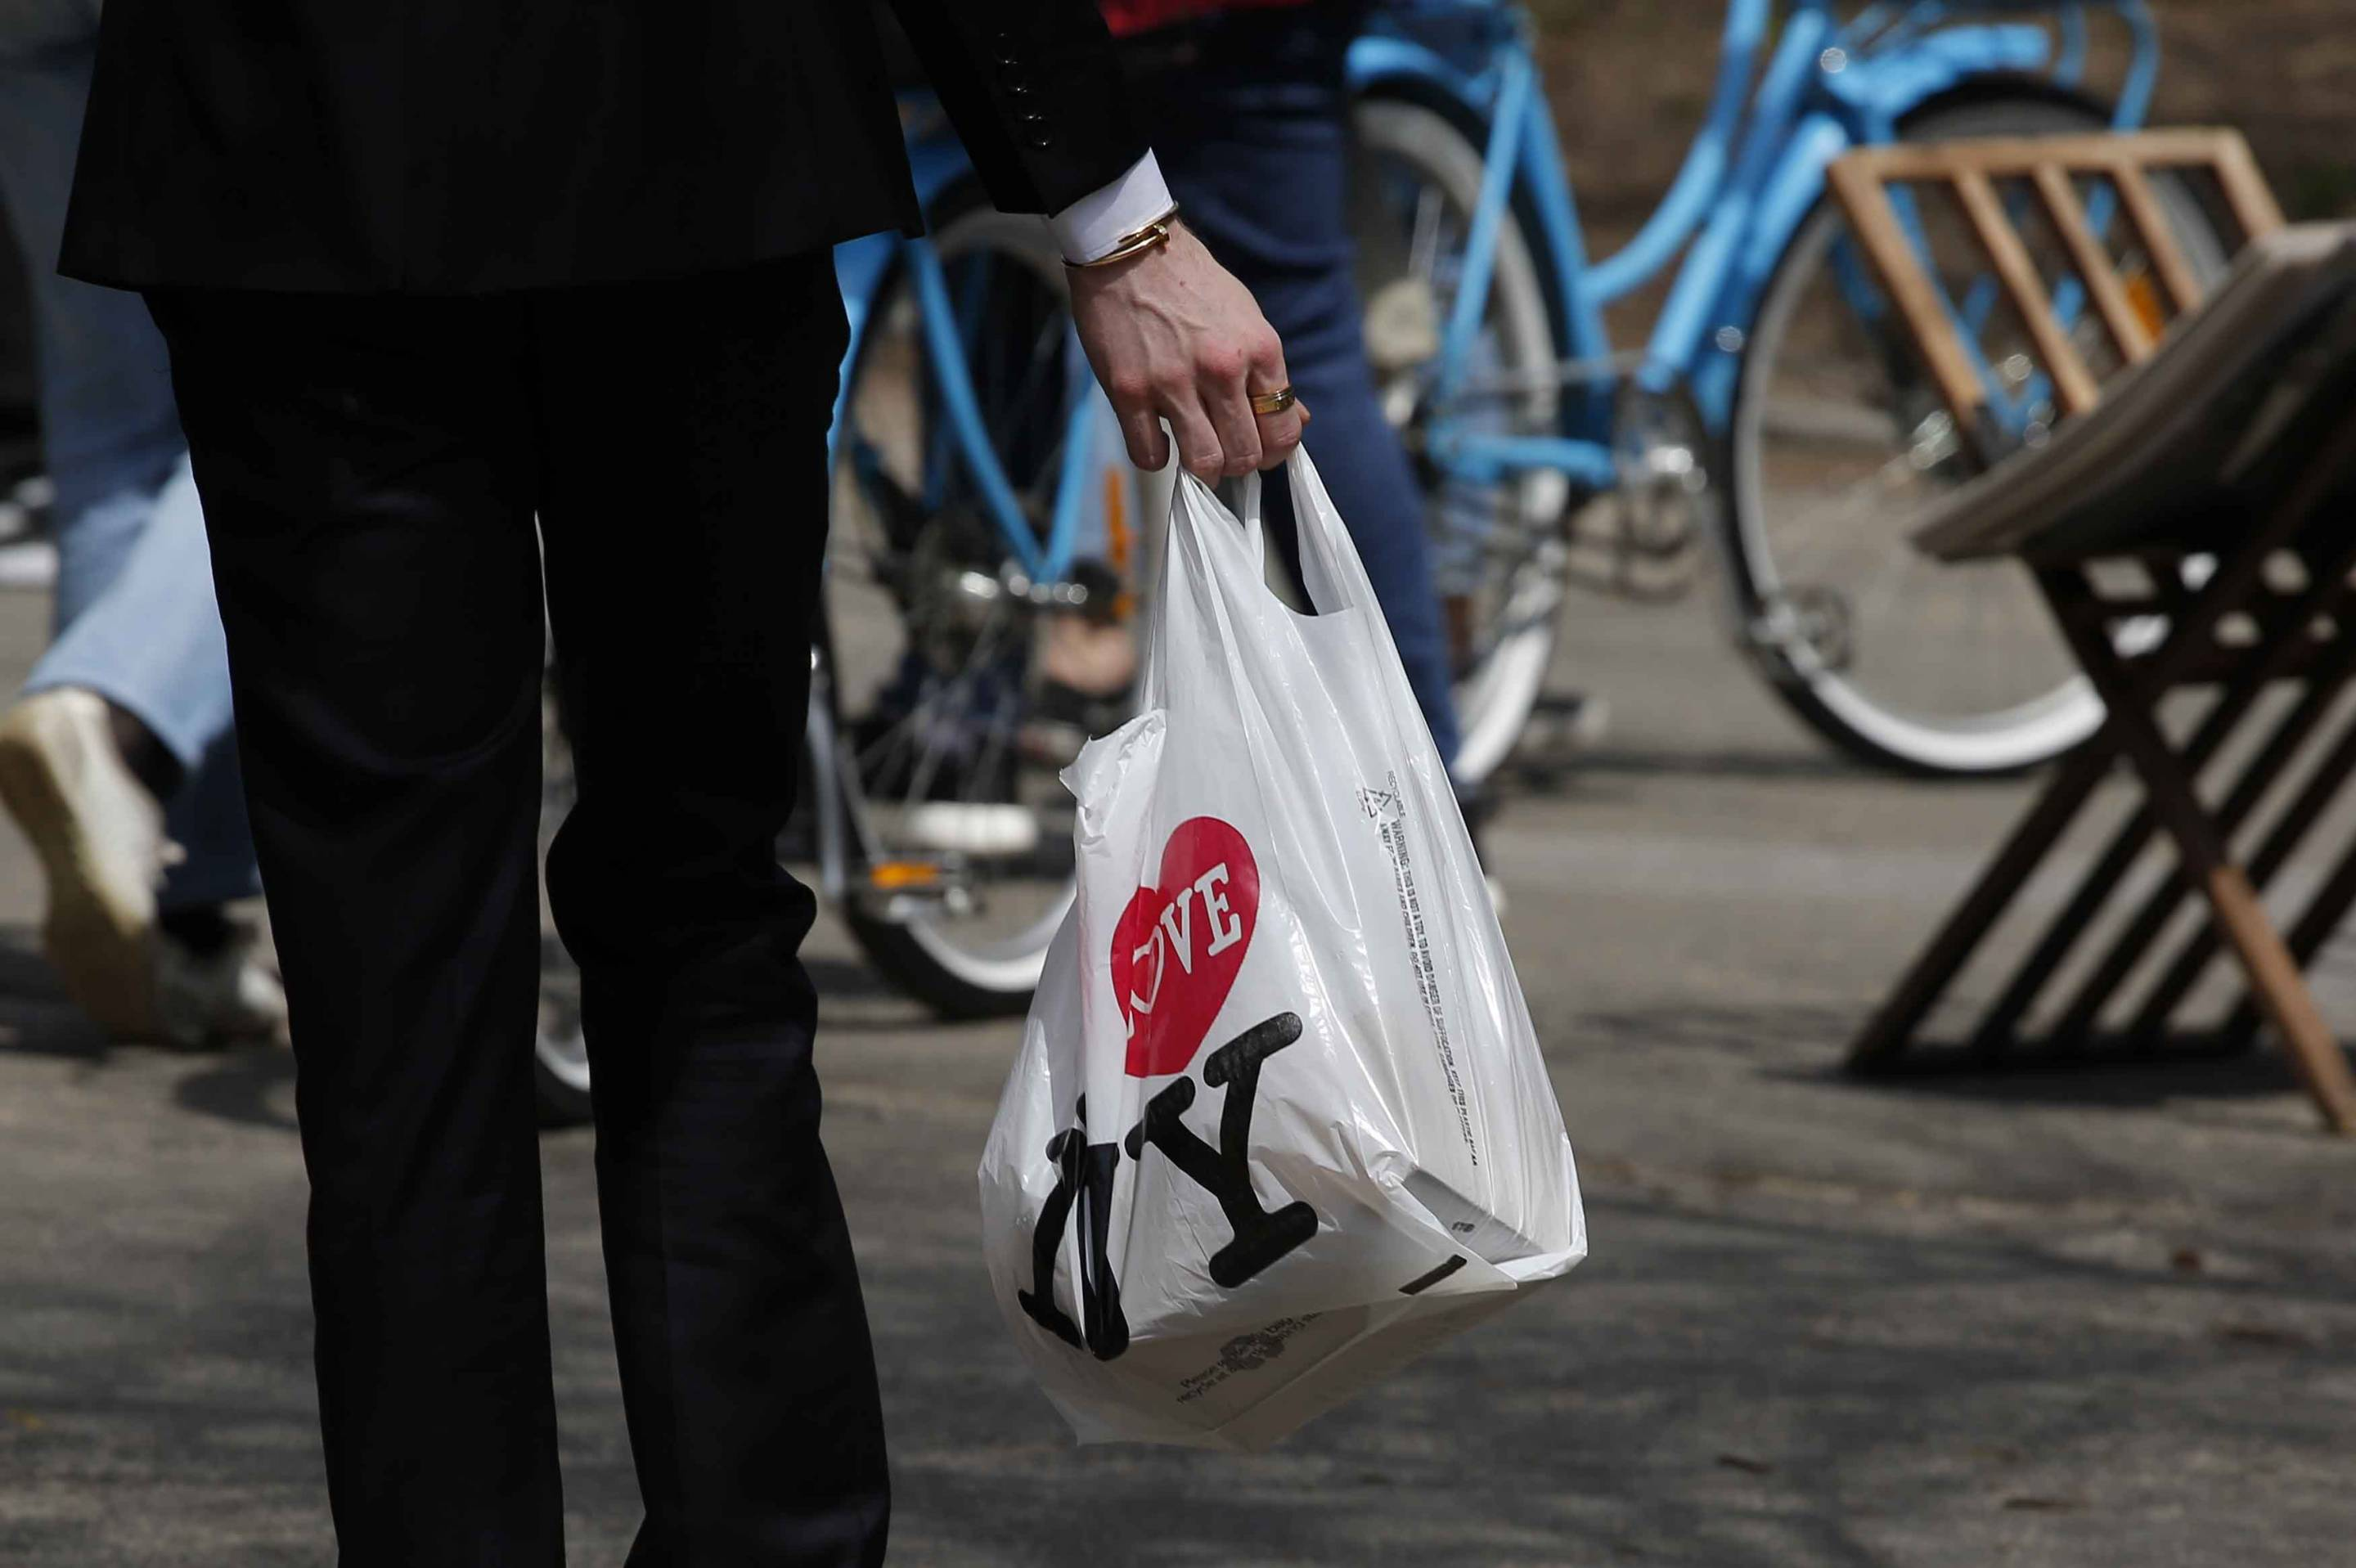 New York Governor Proposes Statewide Ban on Plastic Bags